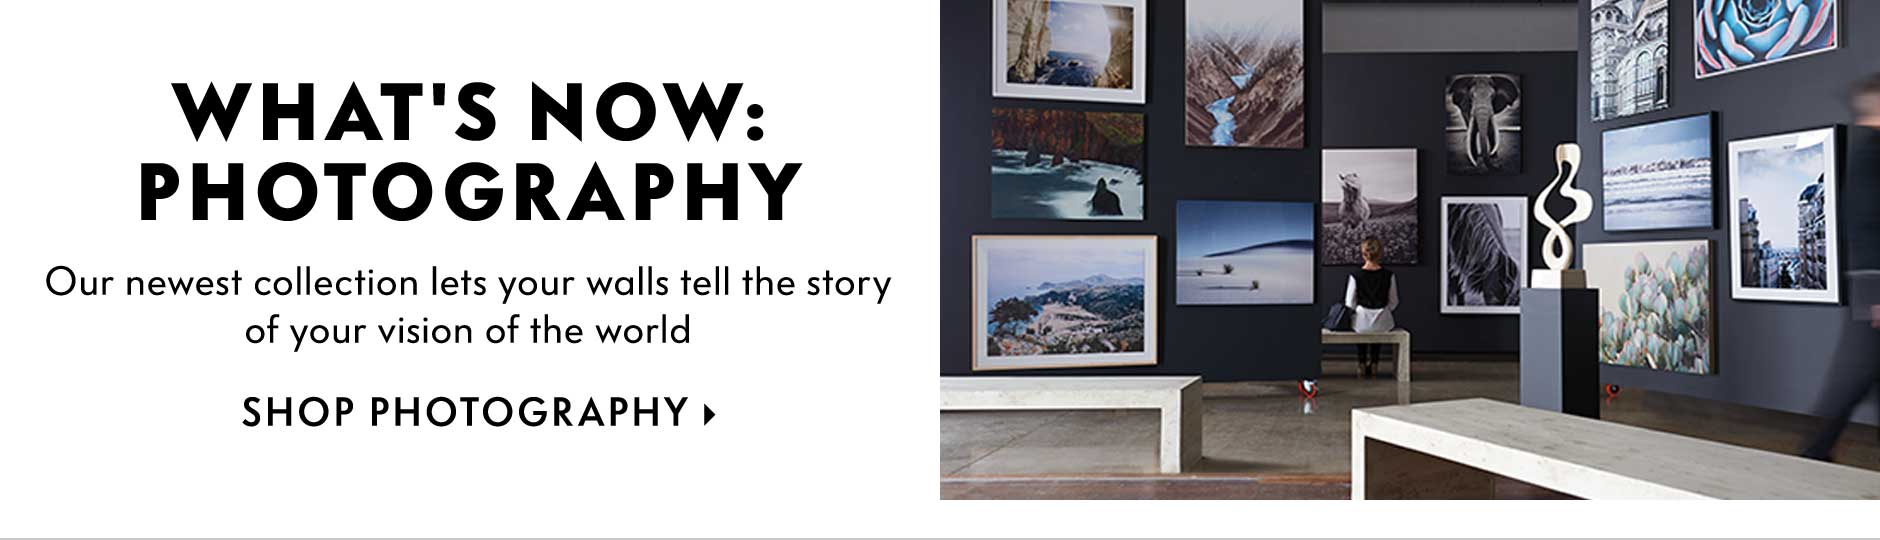 What's Now: Photography - Our newest collection lets your walls tell the story of your vision of the world